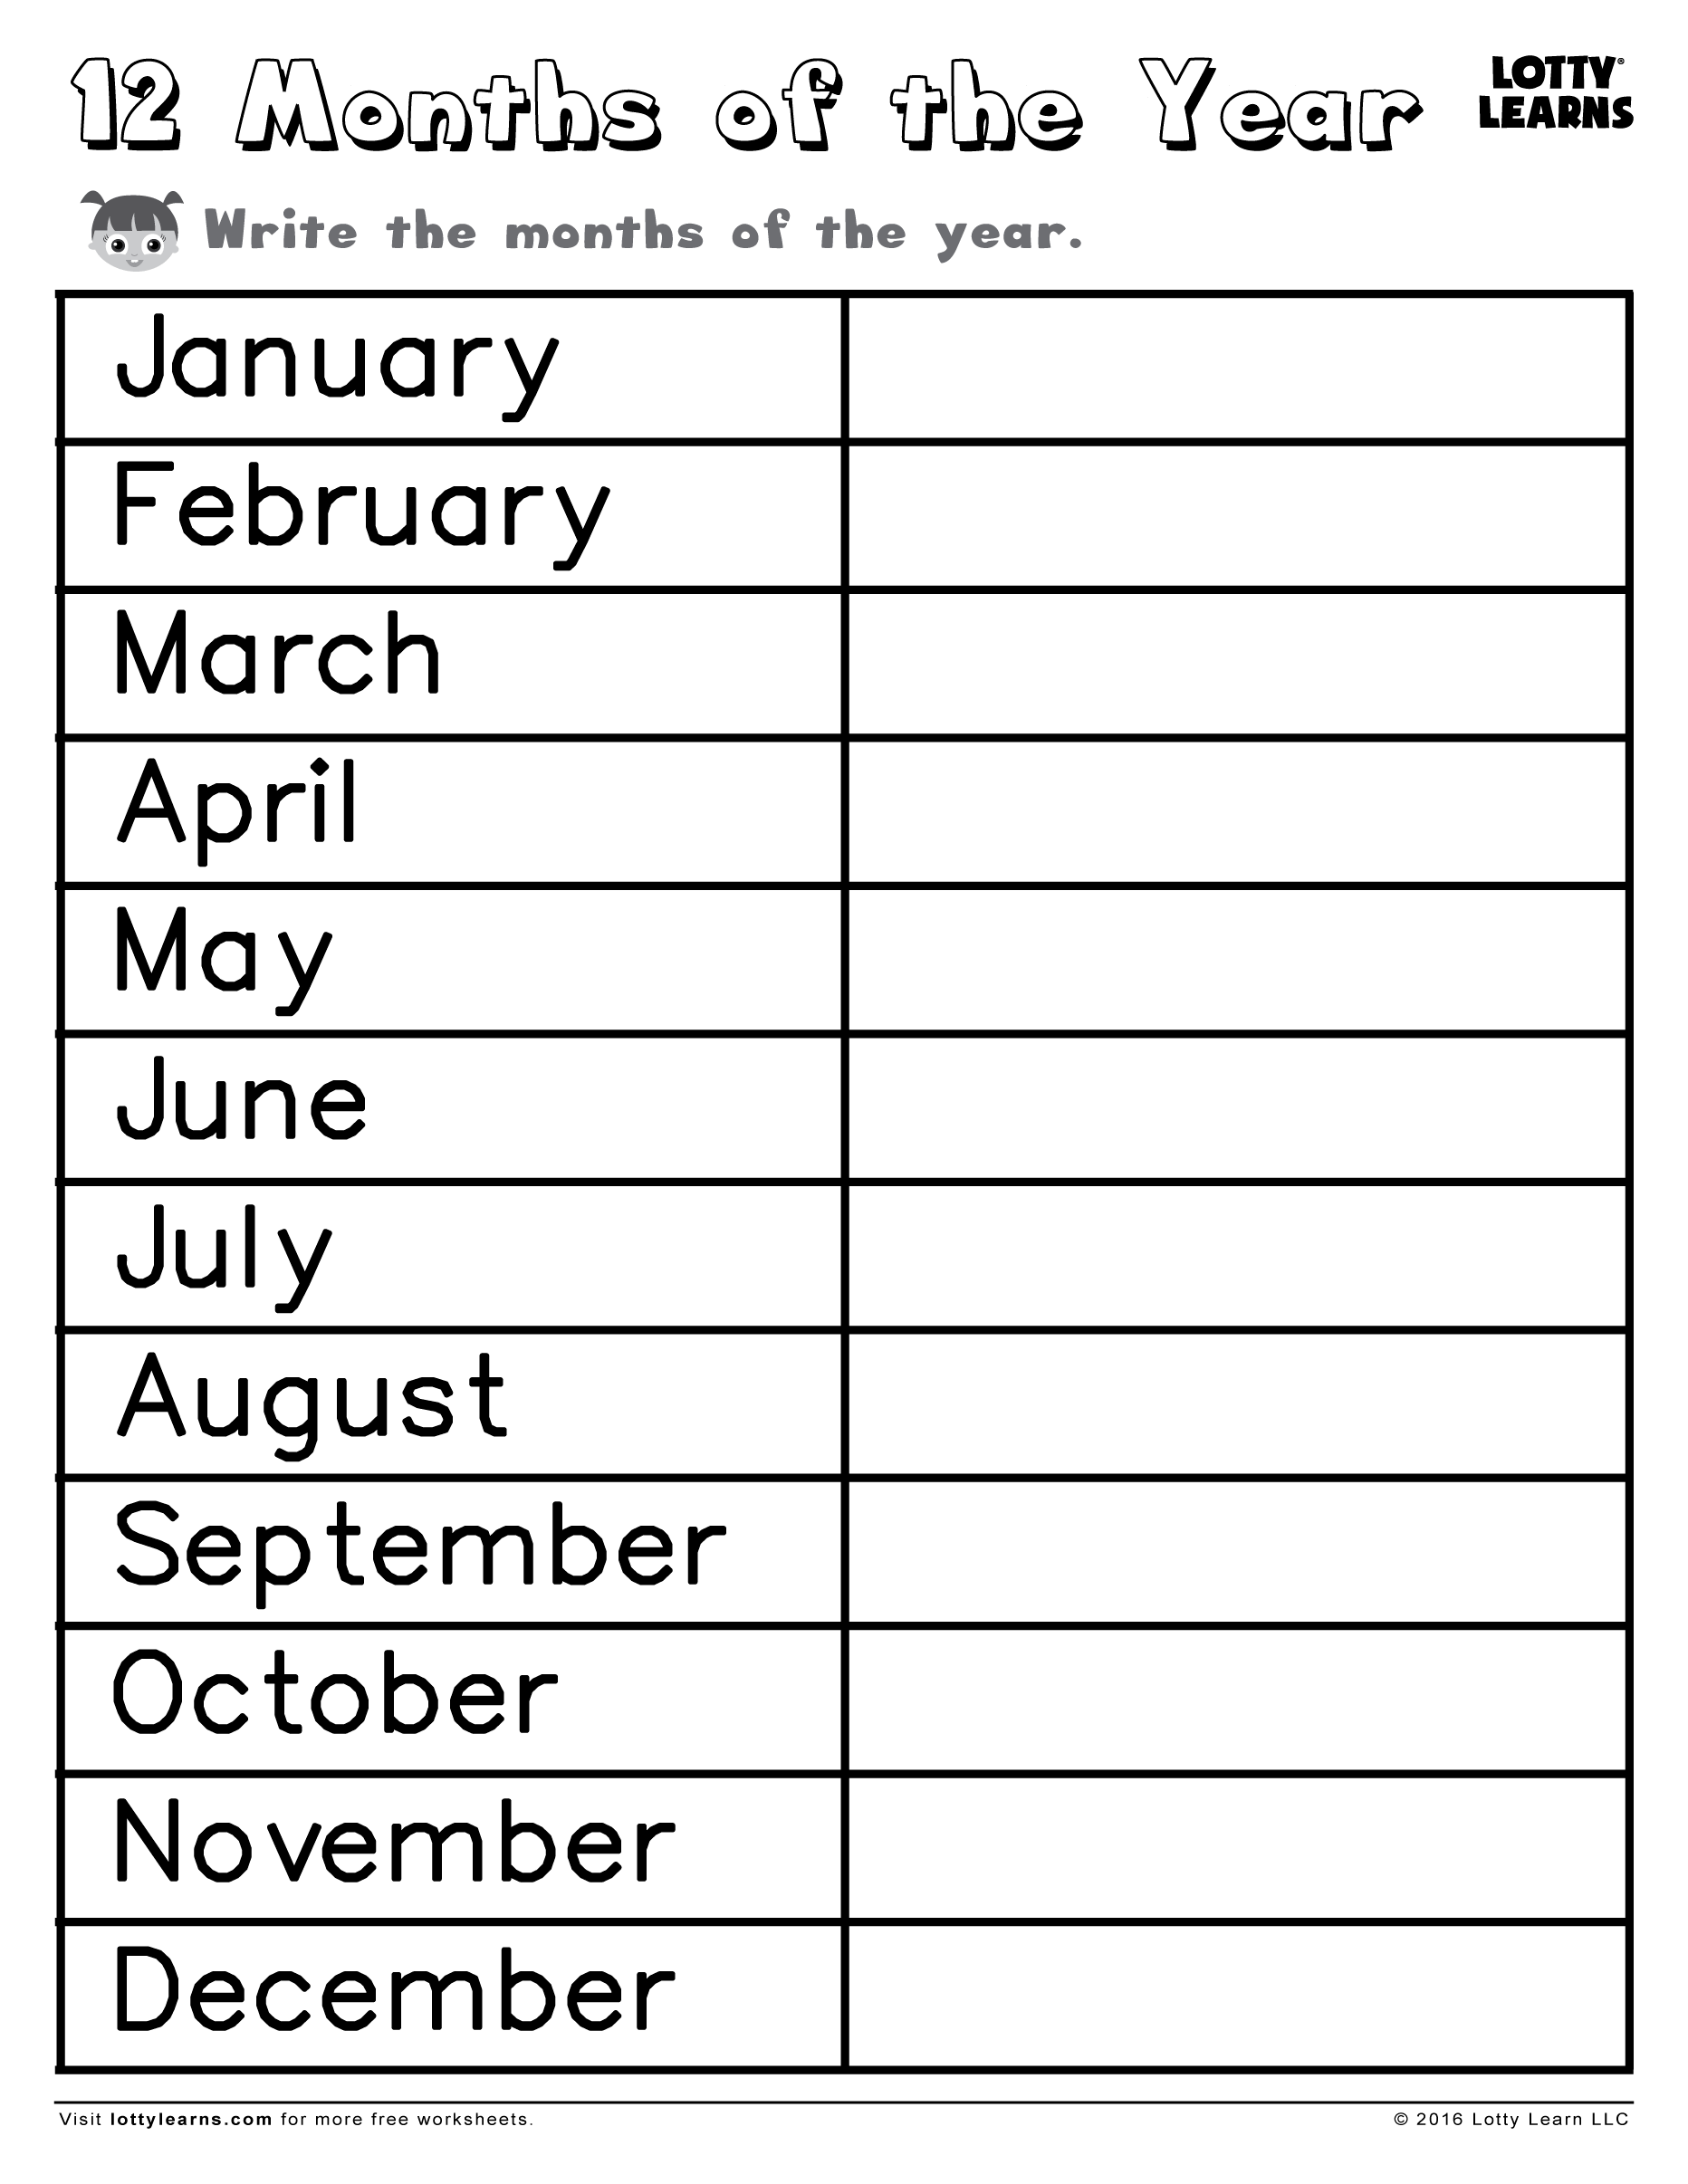 Los Meses En Ingles Worksheet For Months Of The Year